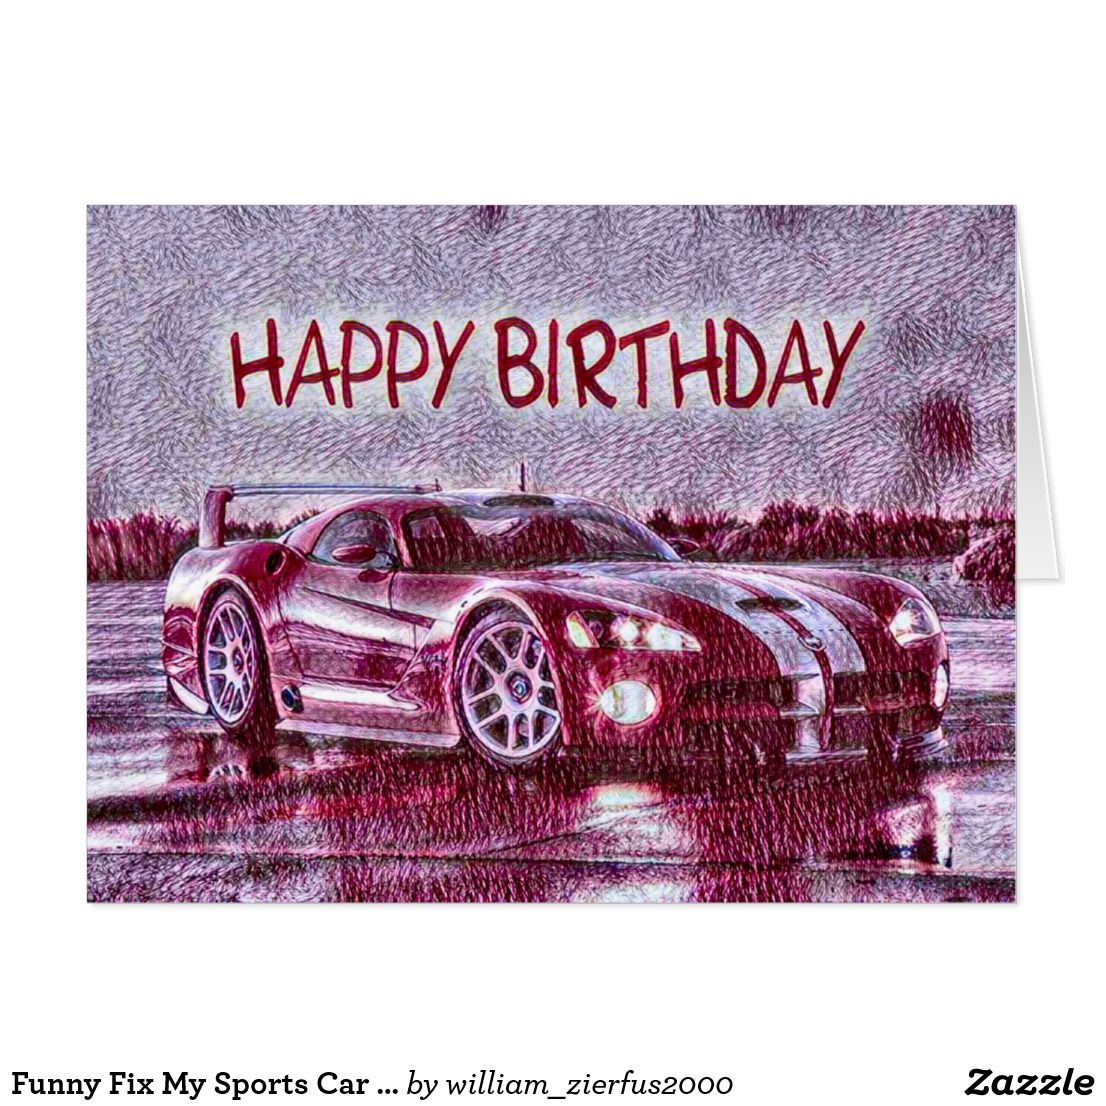 Funny Fix My Sports Car Hand Drawn Birthday Card Zazzle Com Birthday Card Drawing Birthday Cards How To Draw Hands